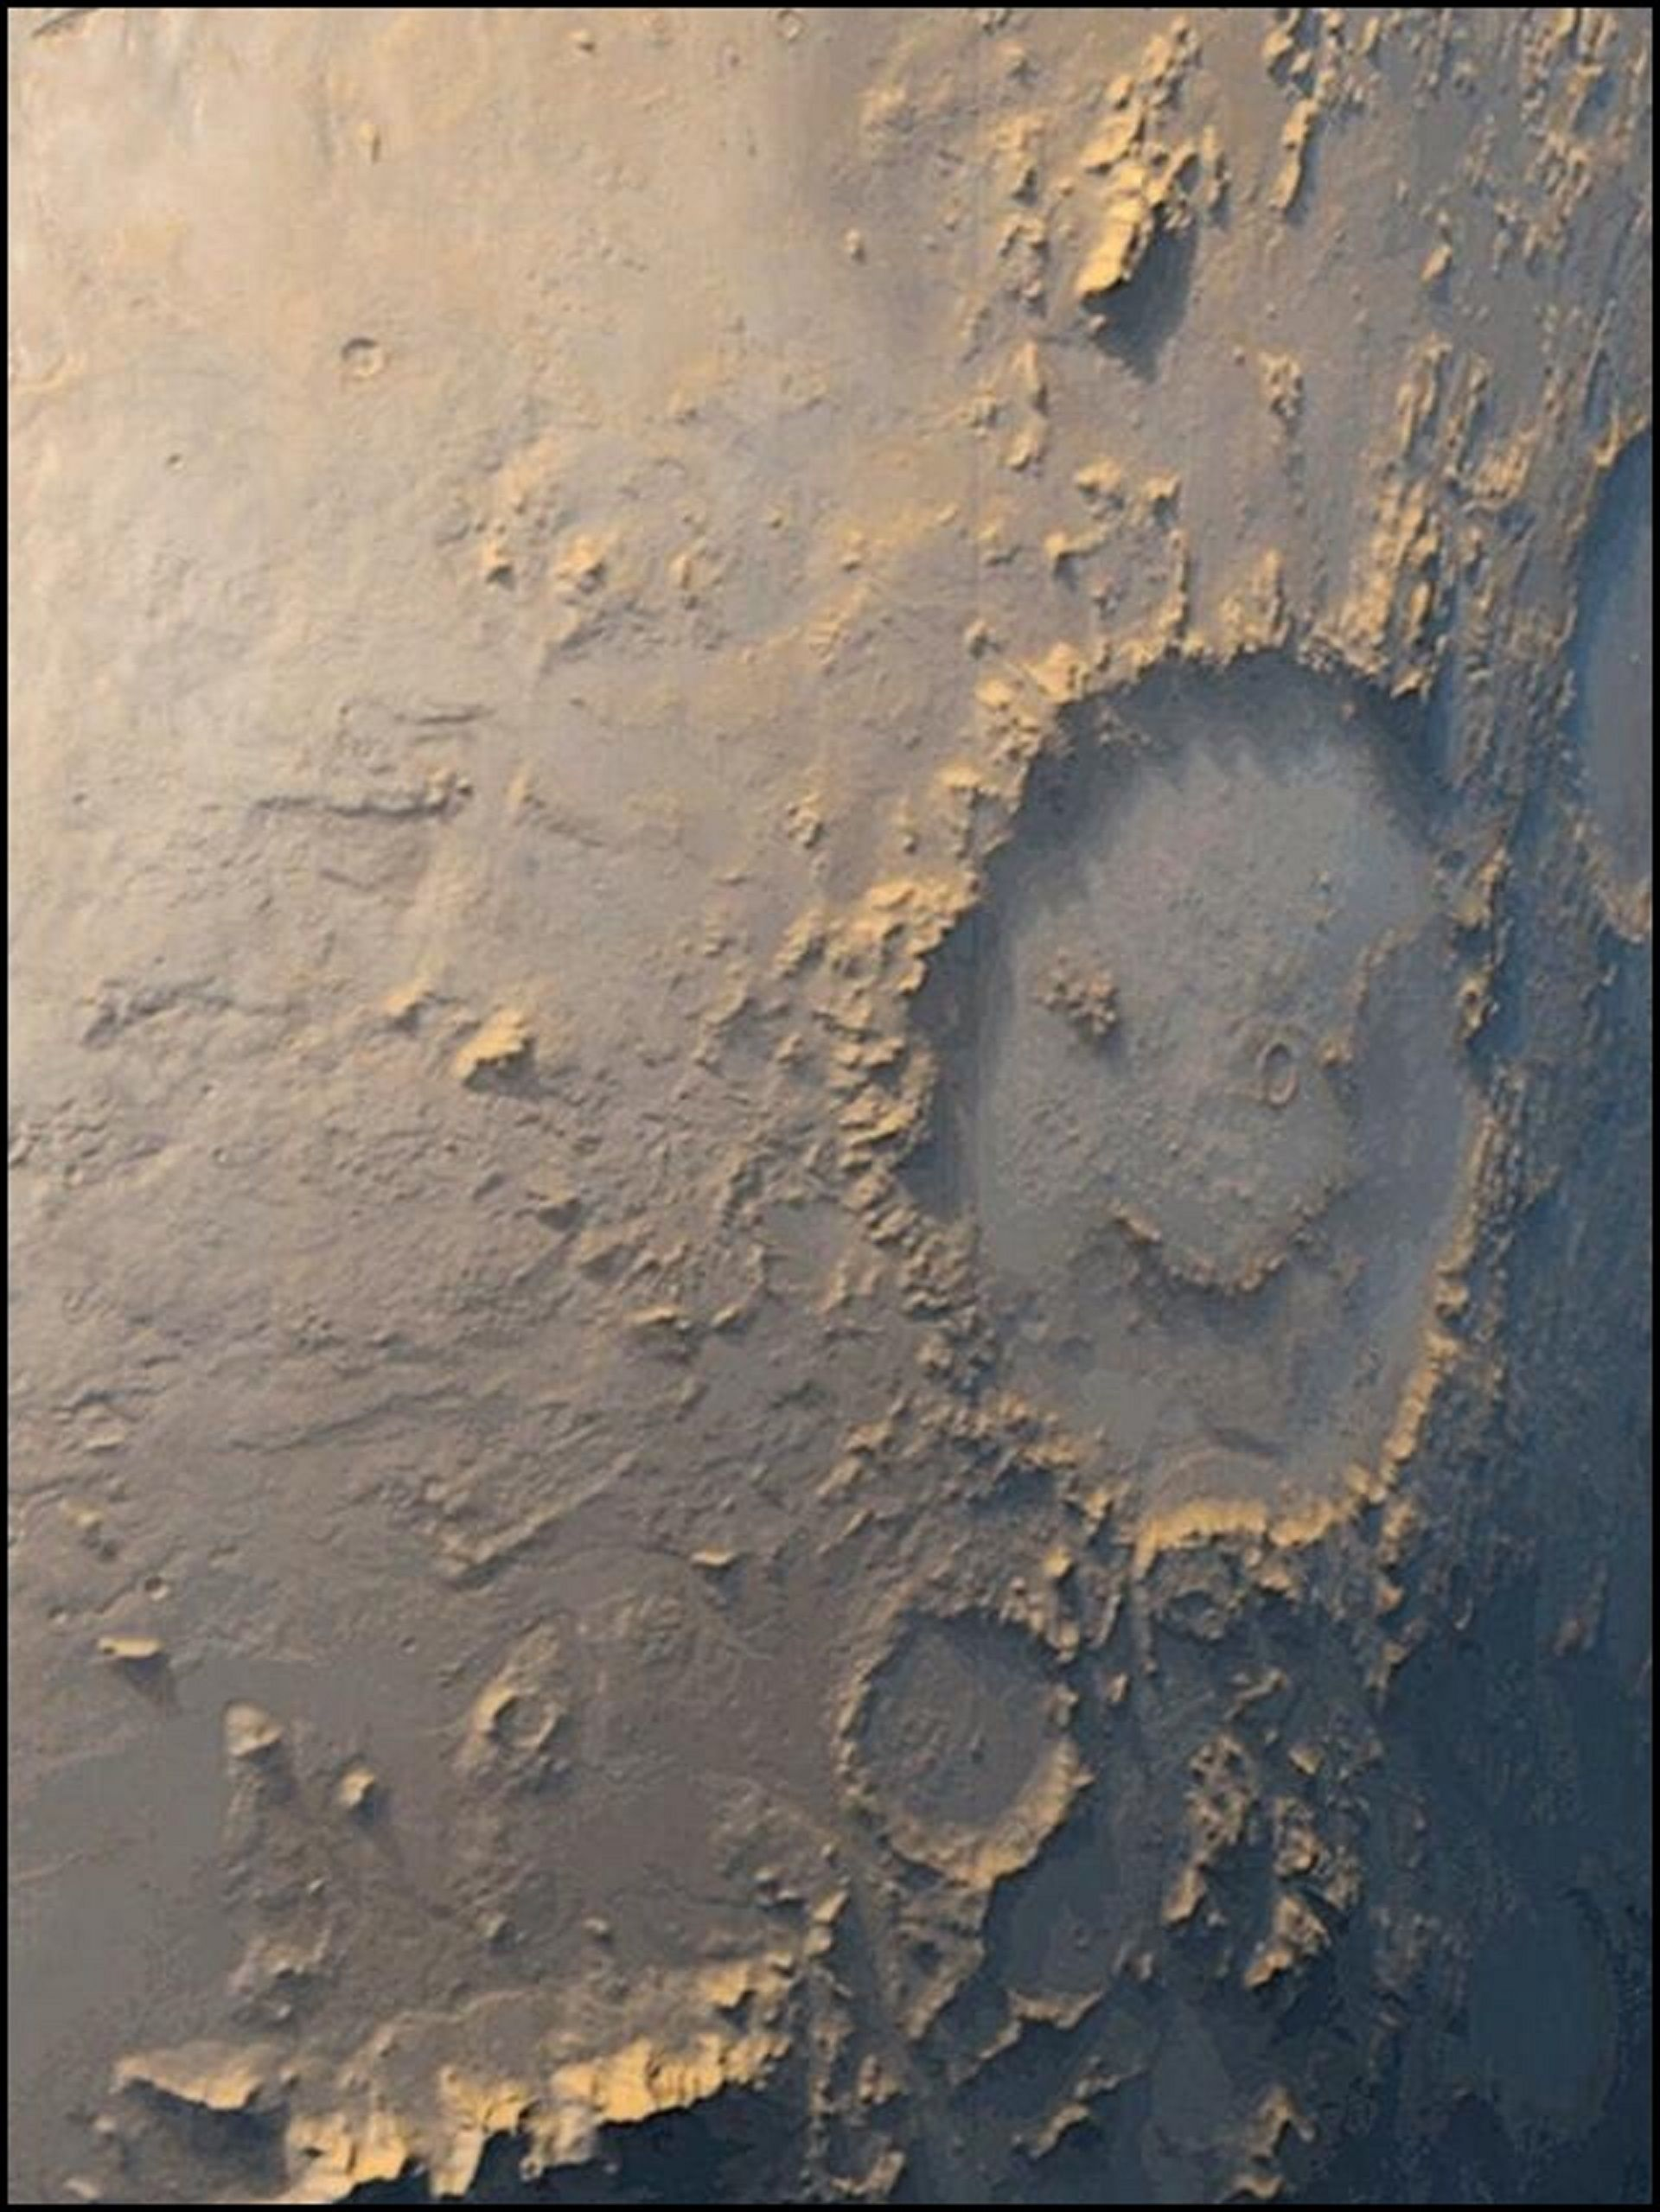 Photo Provided By Nasa Crater Happy Face Happy Face Crater Captured By The Mars Global Surveyor On 8 March 1999 It I Space Pictures Life On Mars Planets